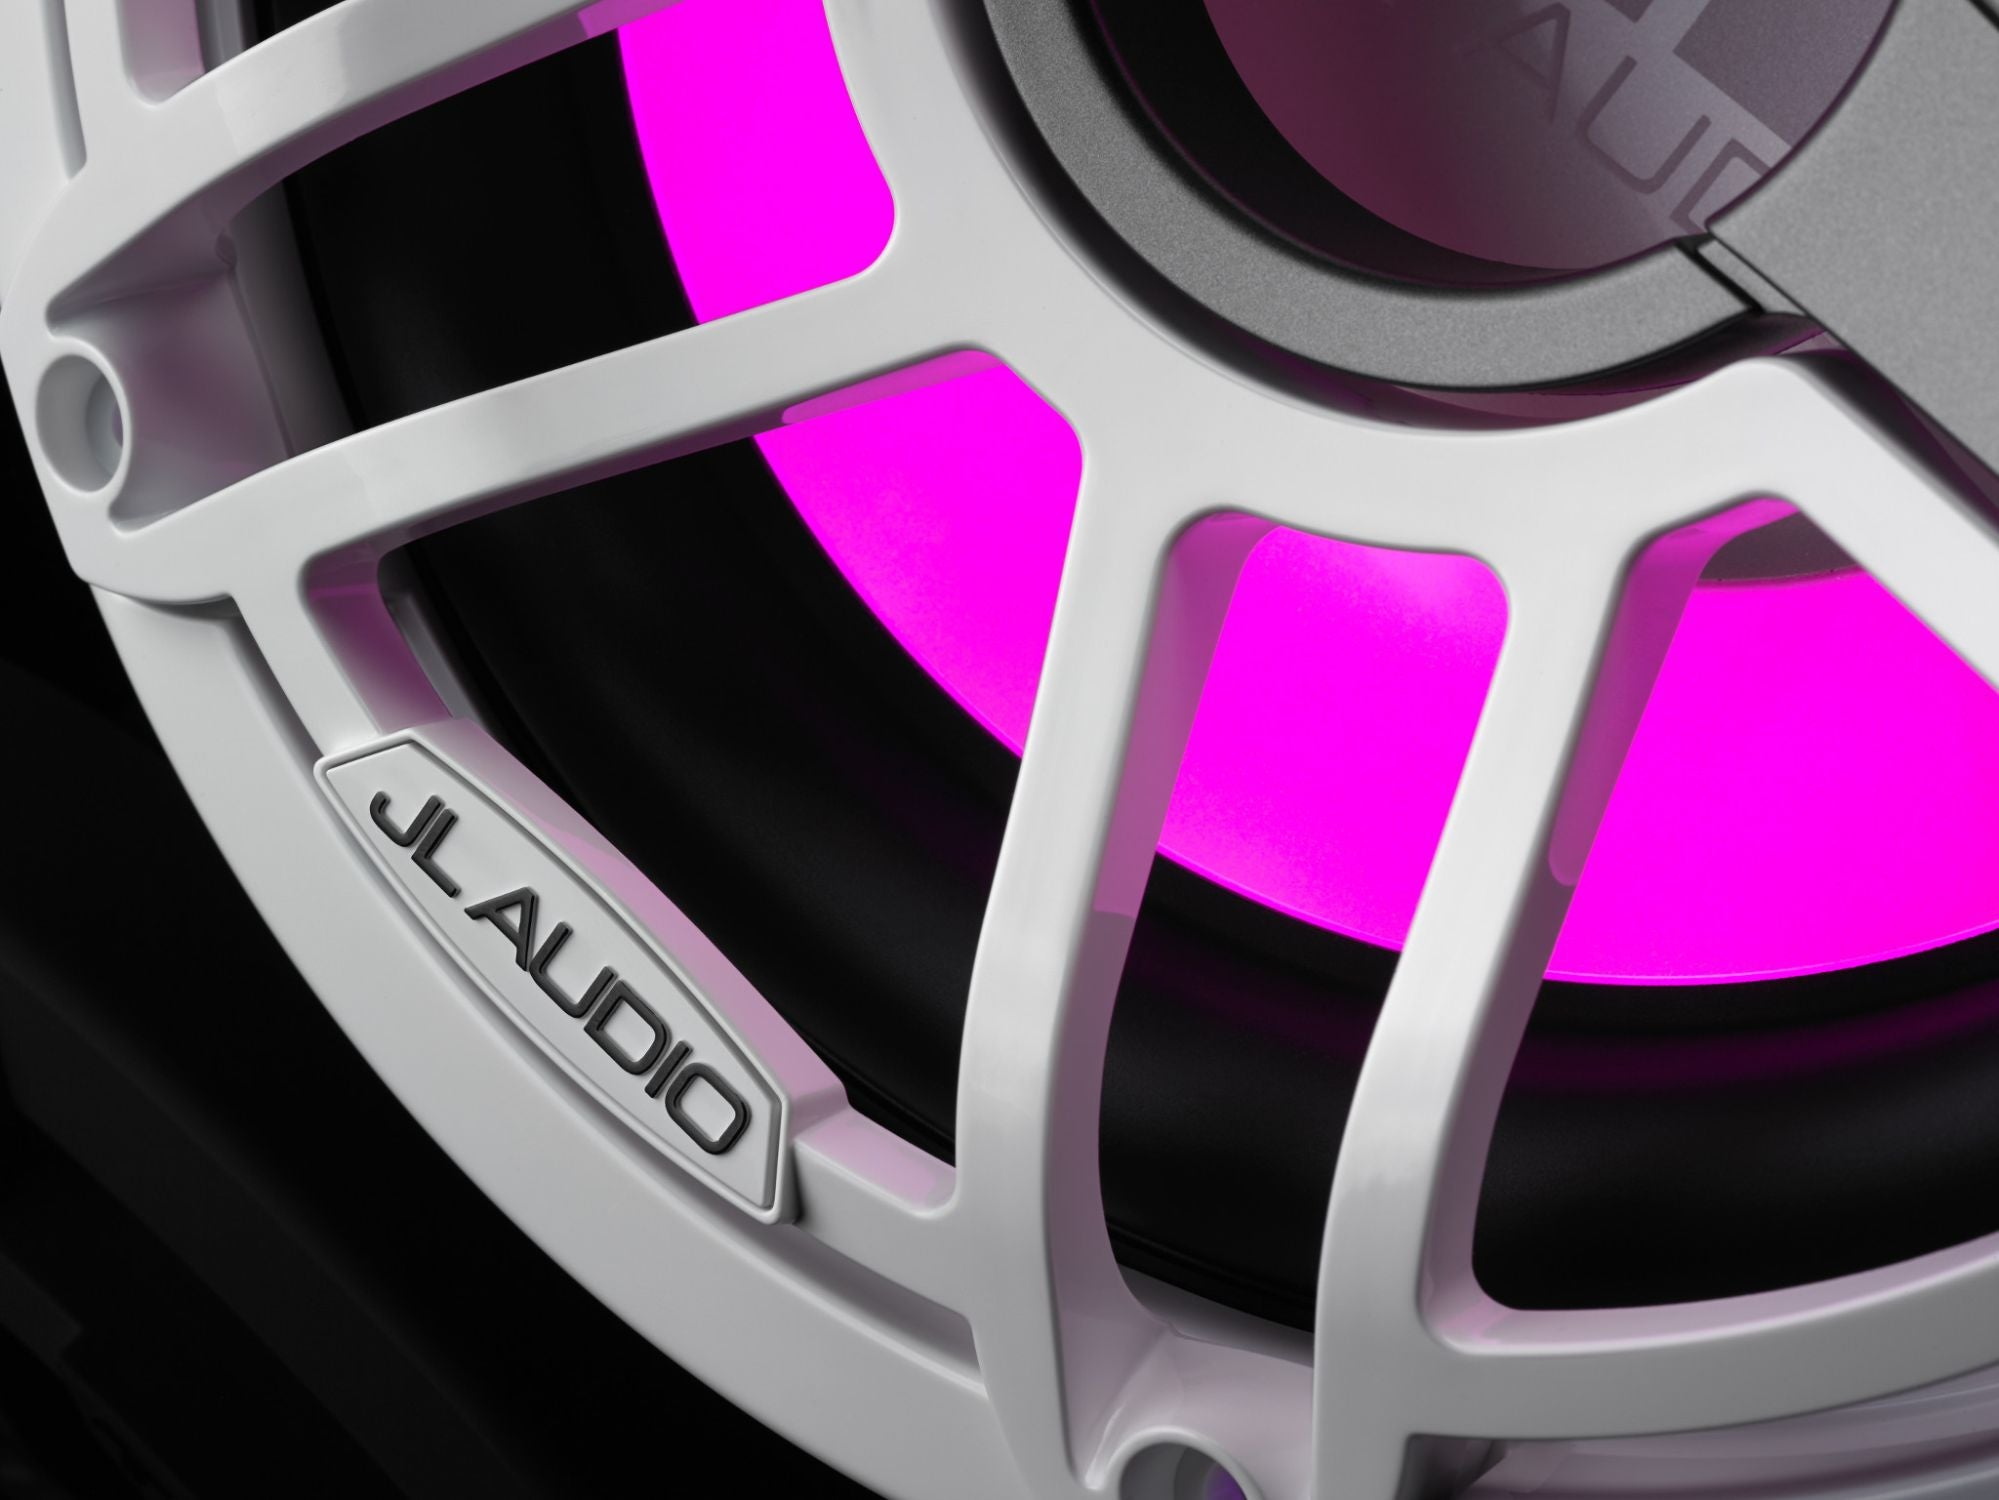 Detail of M6-10IB-S-GwGw-i-4 Subwoofer Lit with Pink